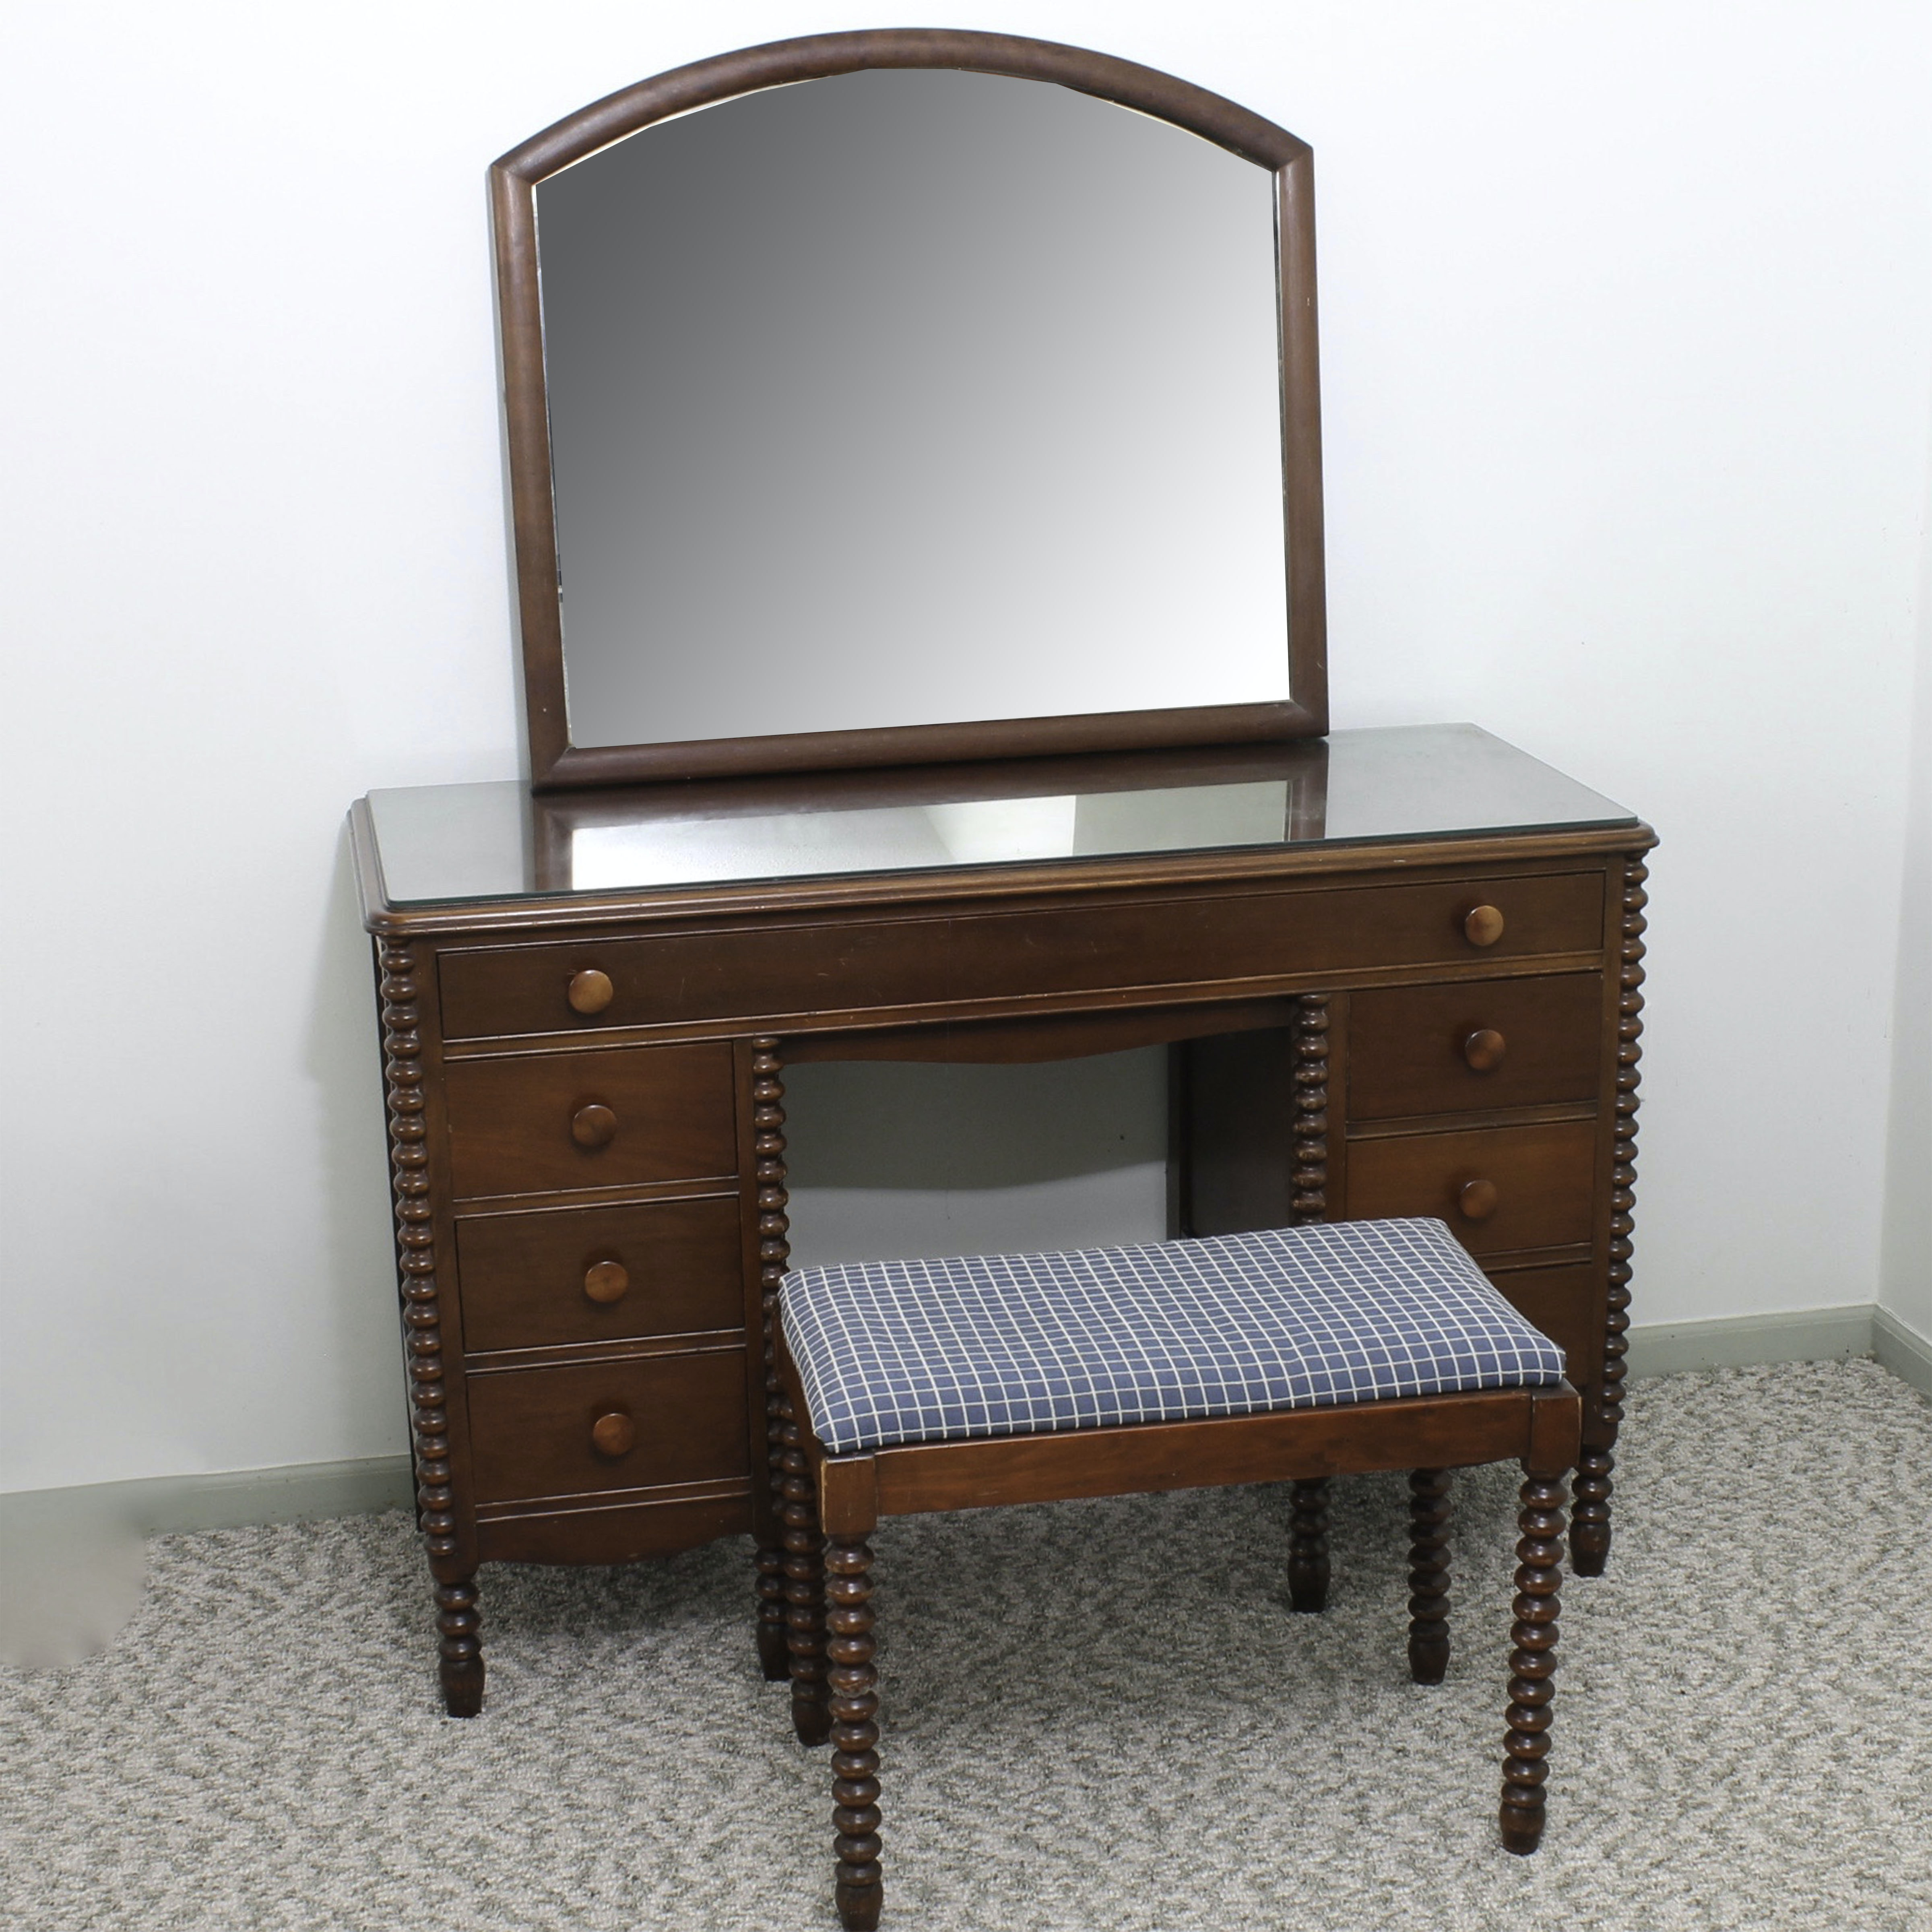 Vintage Wheeler-Okell Co. Cherry Veneer Vanity with Mirror and Bench